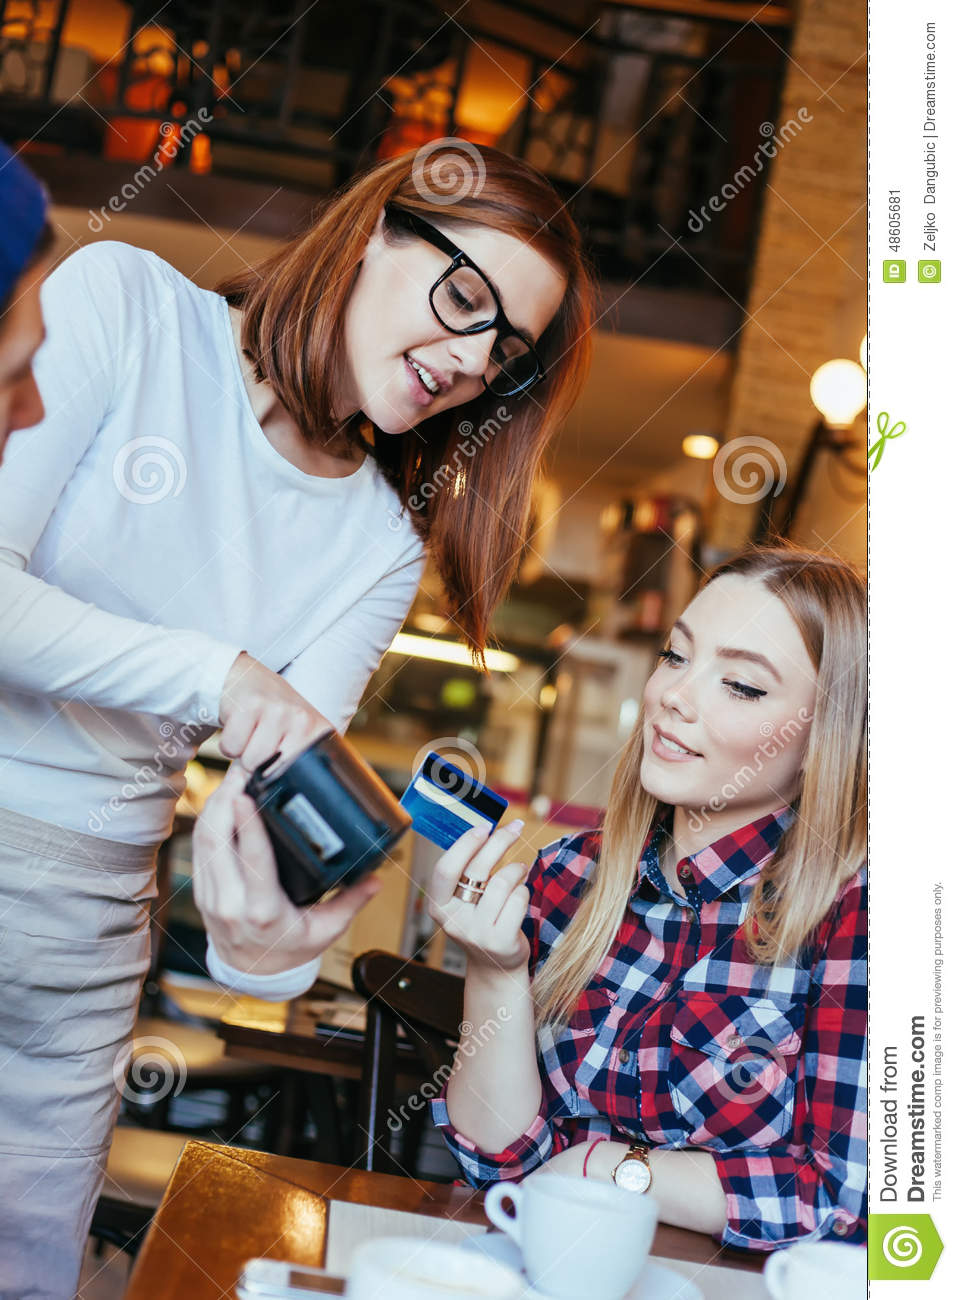 Jeune femme payant Bill By Credit Card